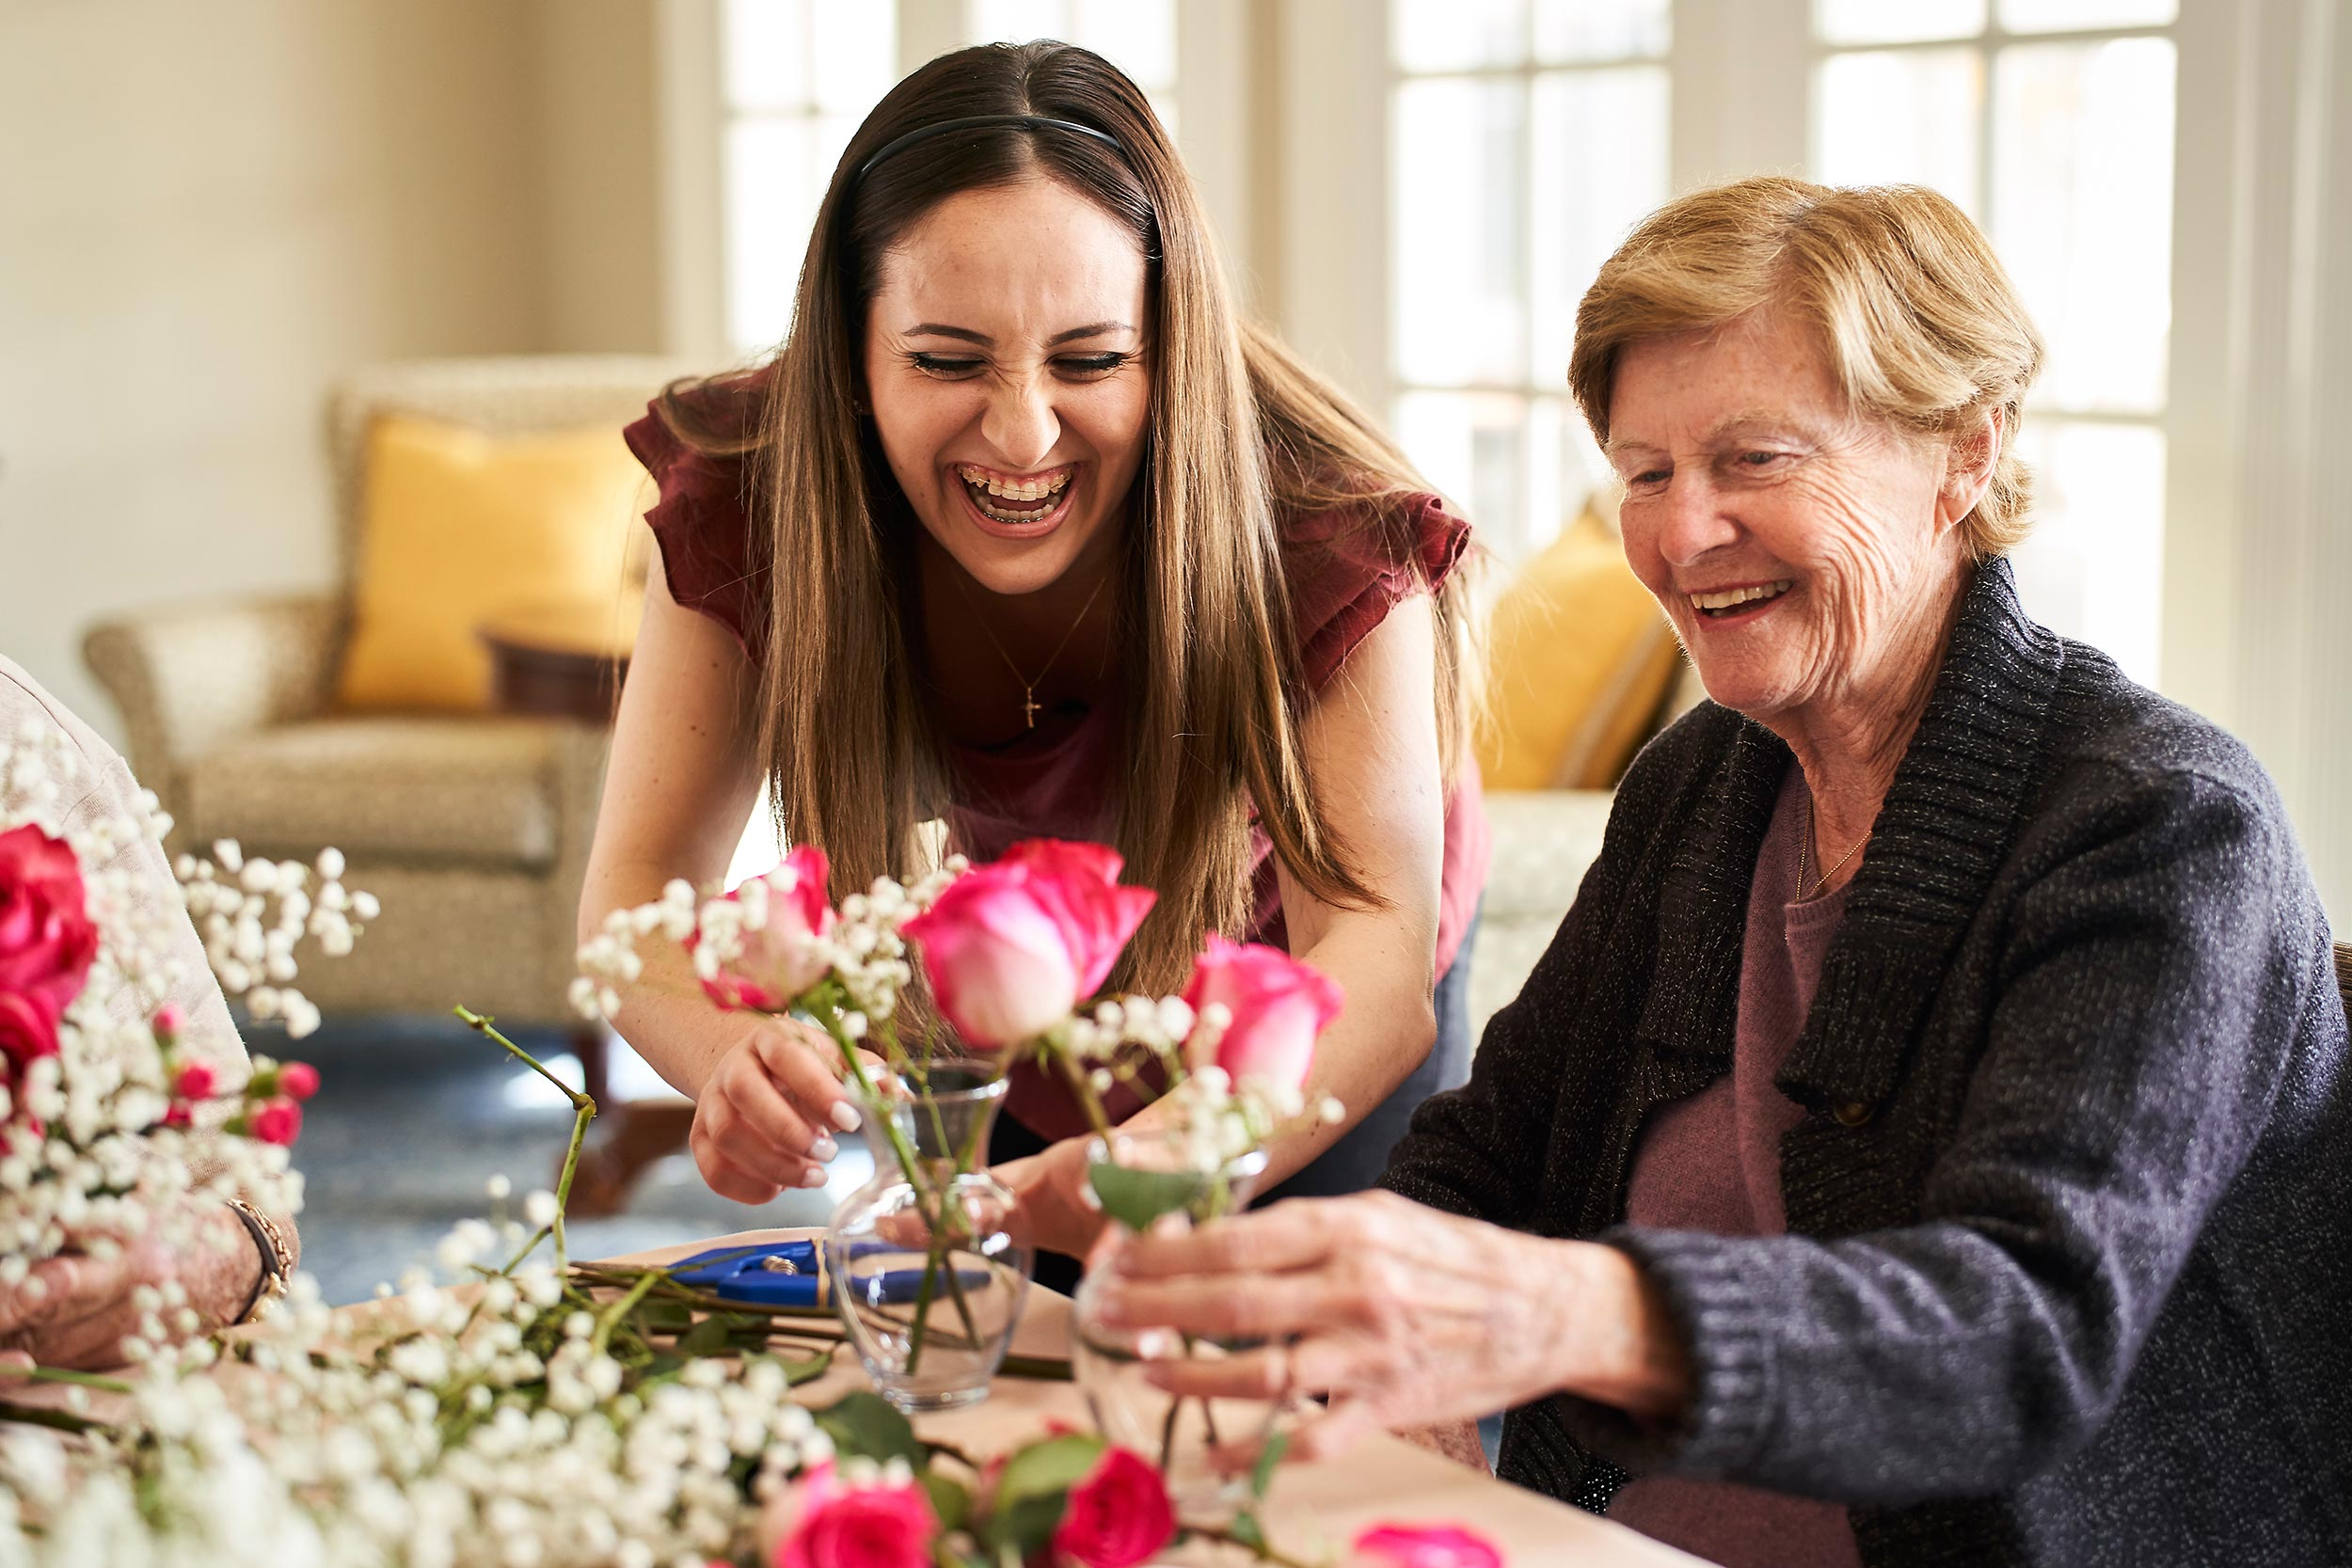 Aegis_OC_Dana_Point_Flower_Arranging_0064-SENIOR-LIVING